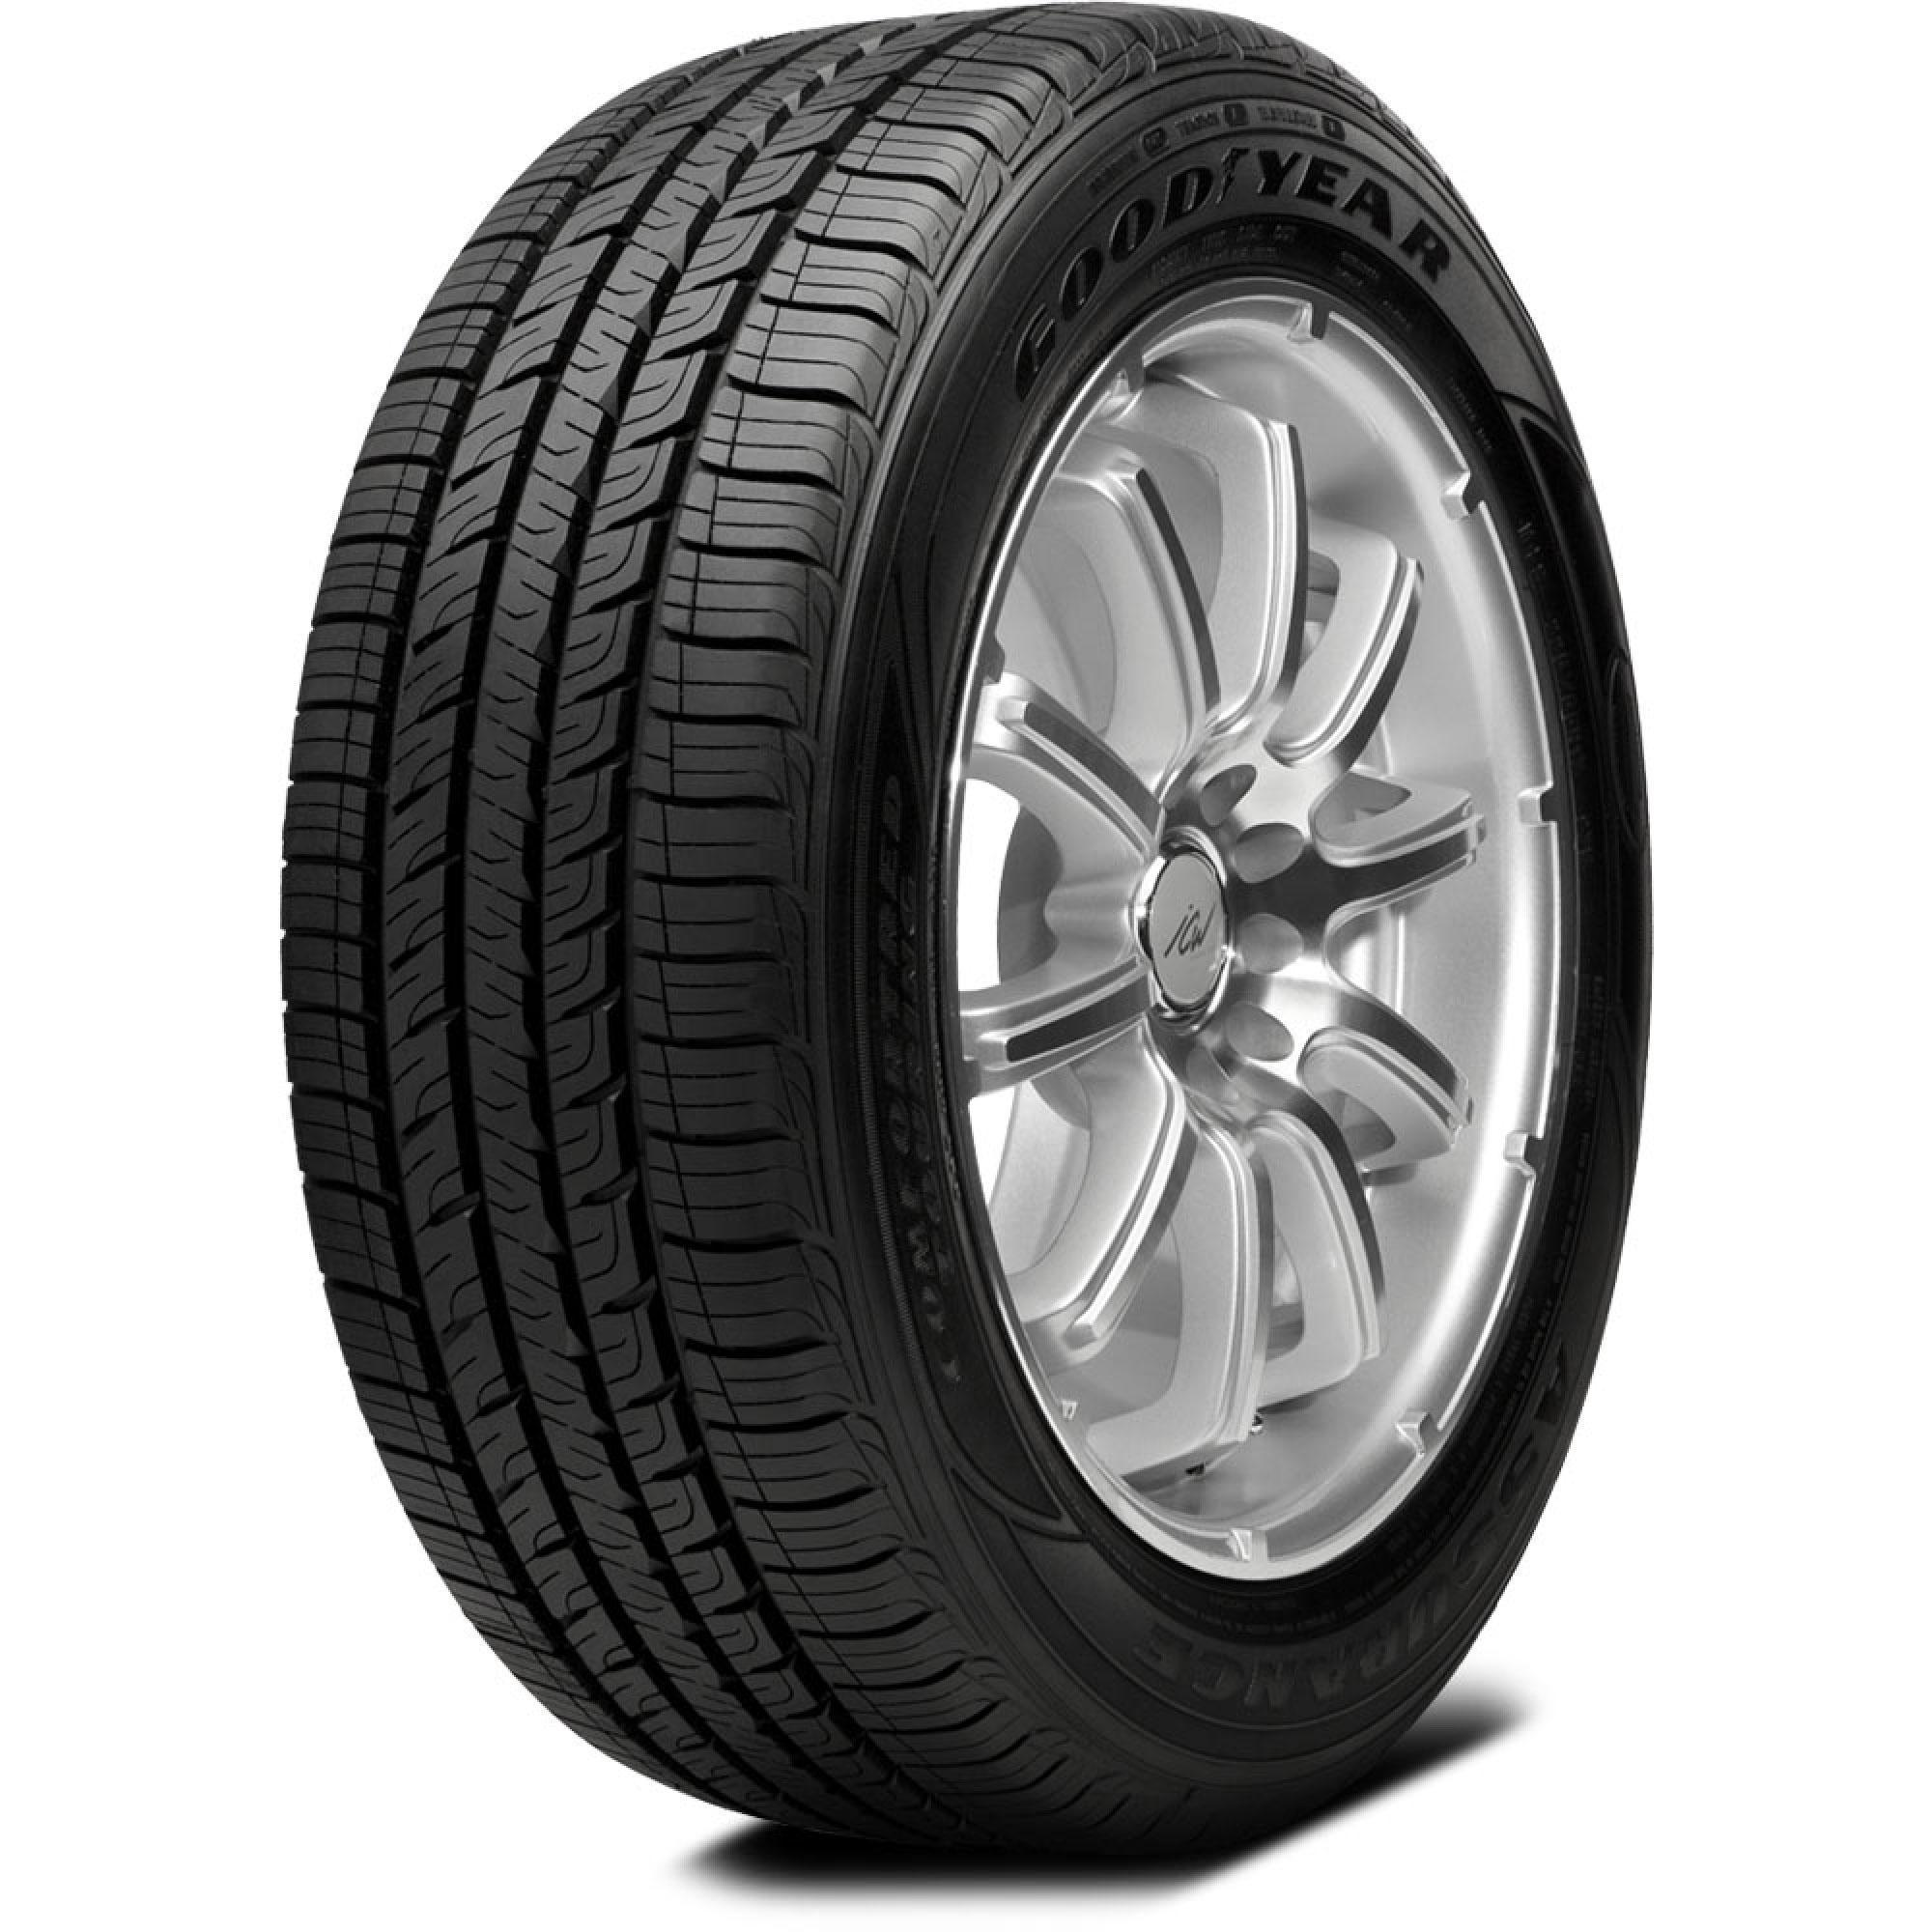 Goodyear Assurance Touring Vs Comfortred Touring